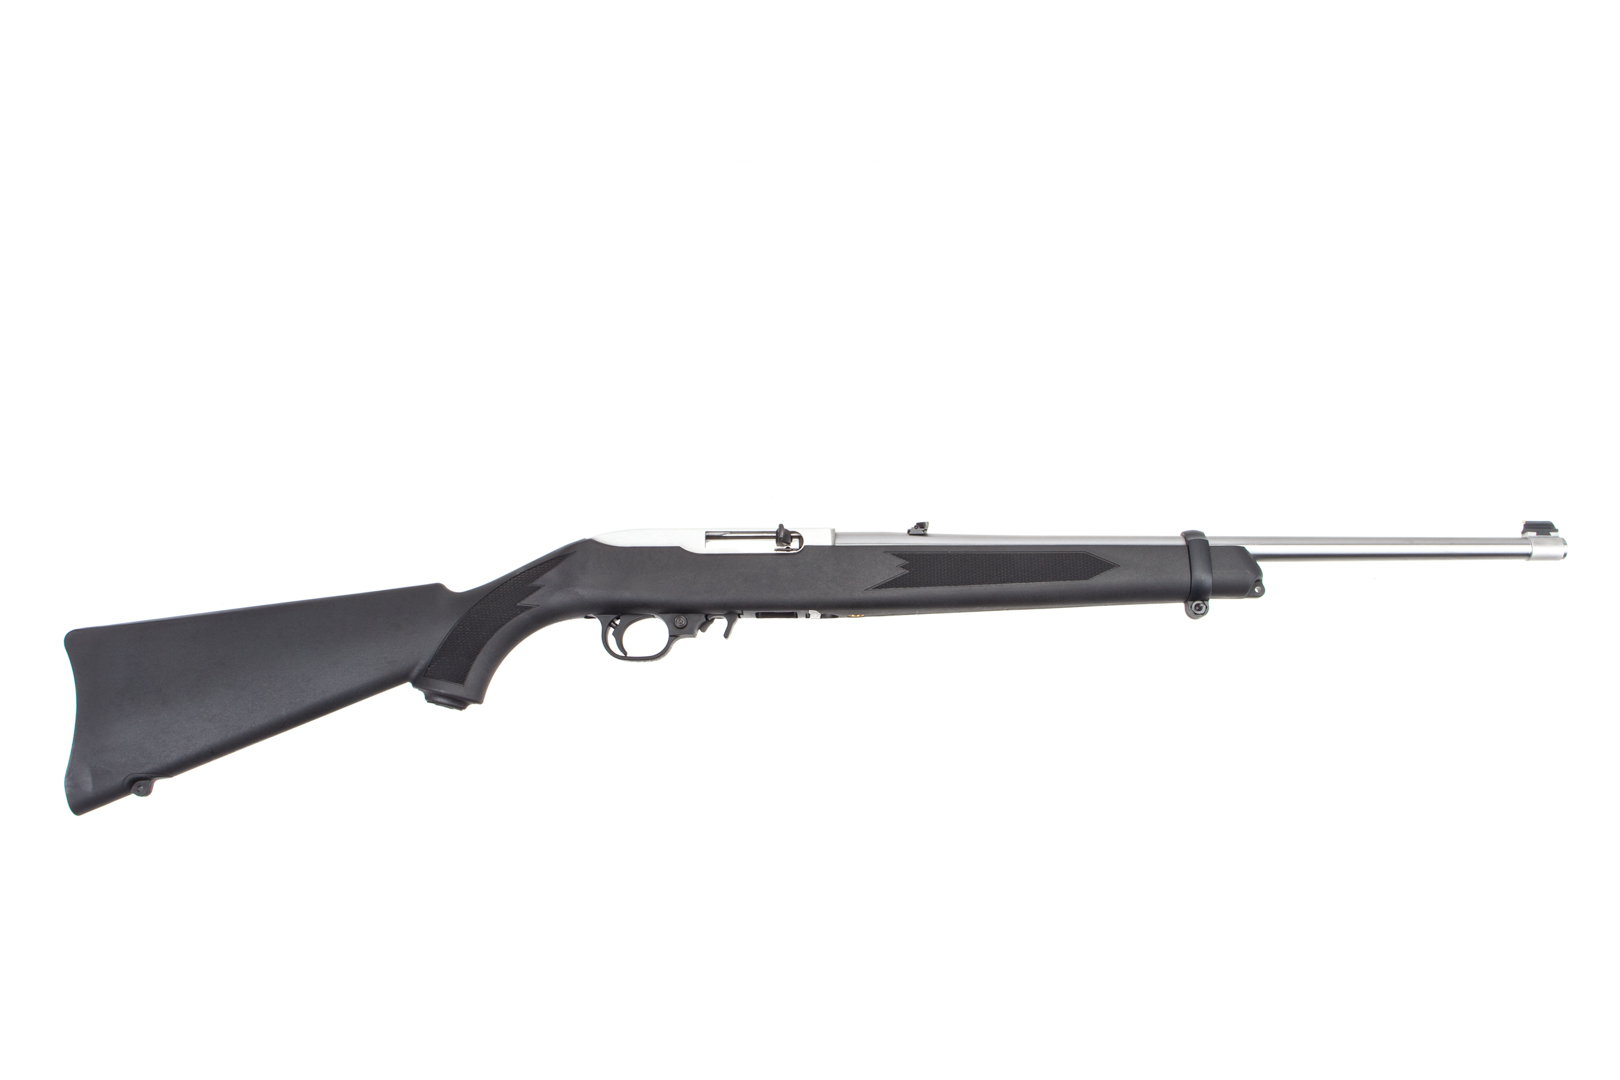 "Ruger 10/22 Carbine .22 LR Semiautomatic Rifle - 18.5"" thumbnail"